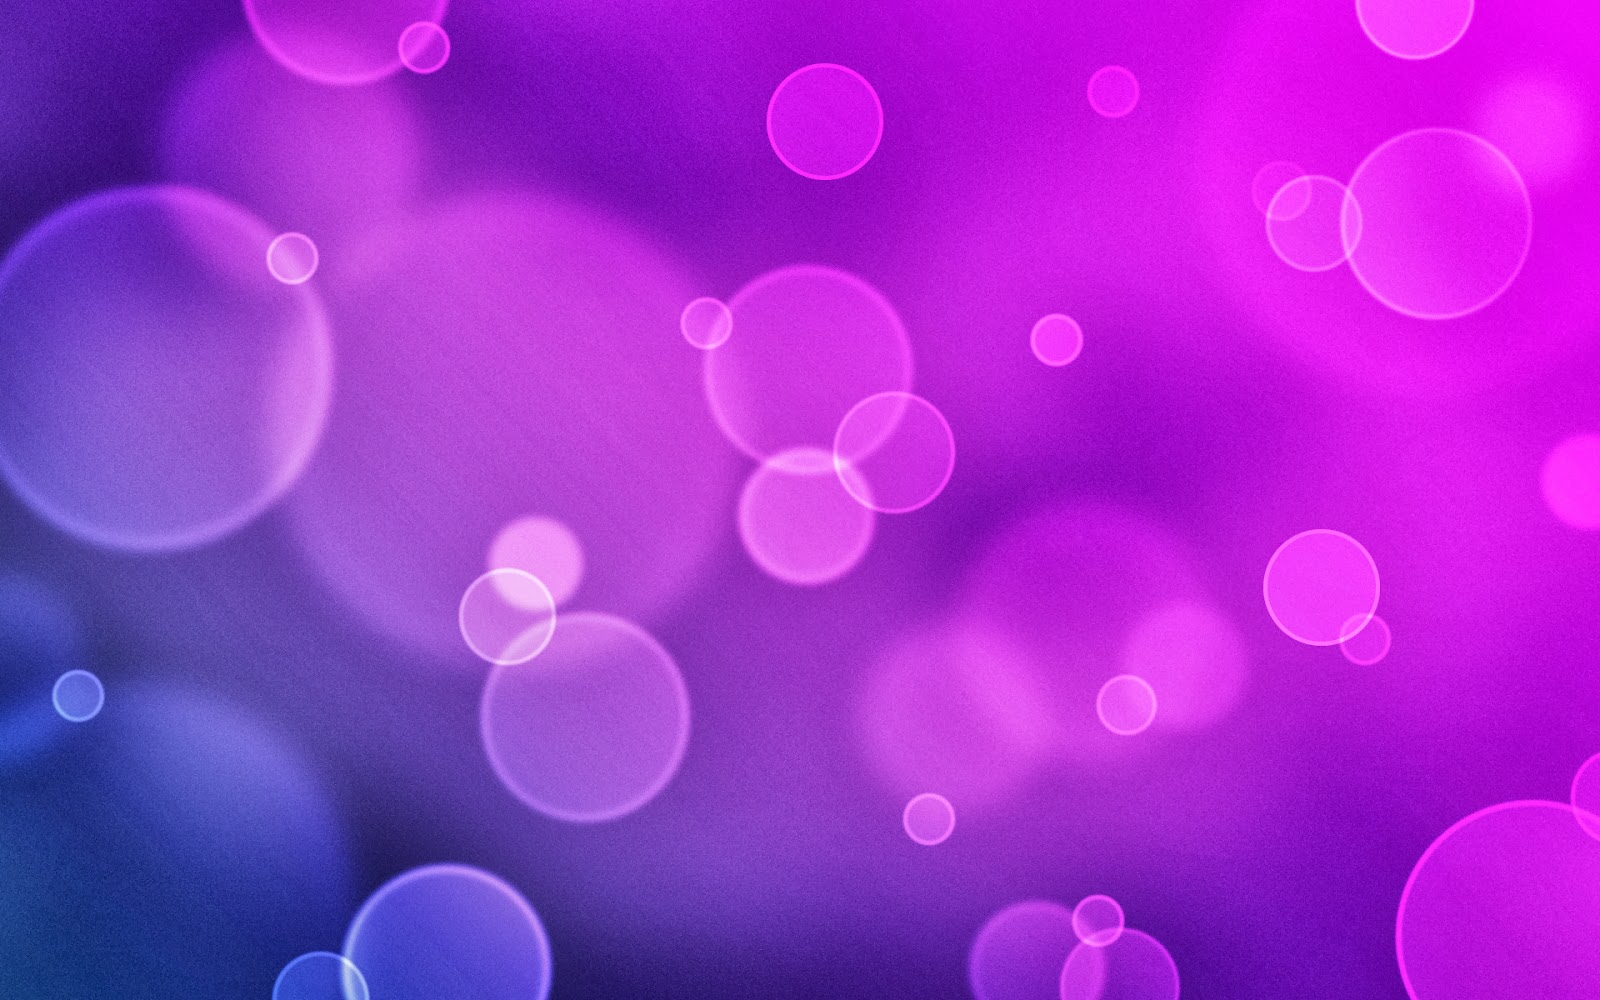 Purple Background hd images 1600x1000